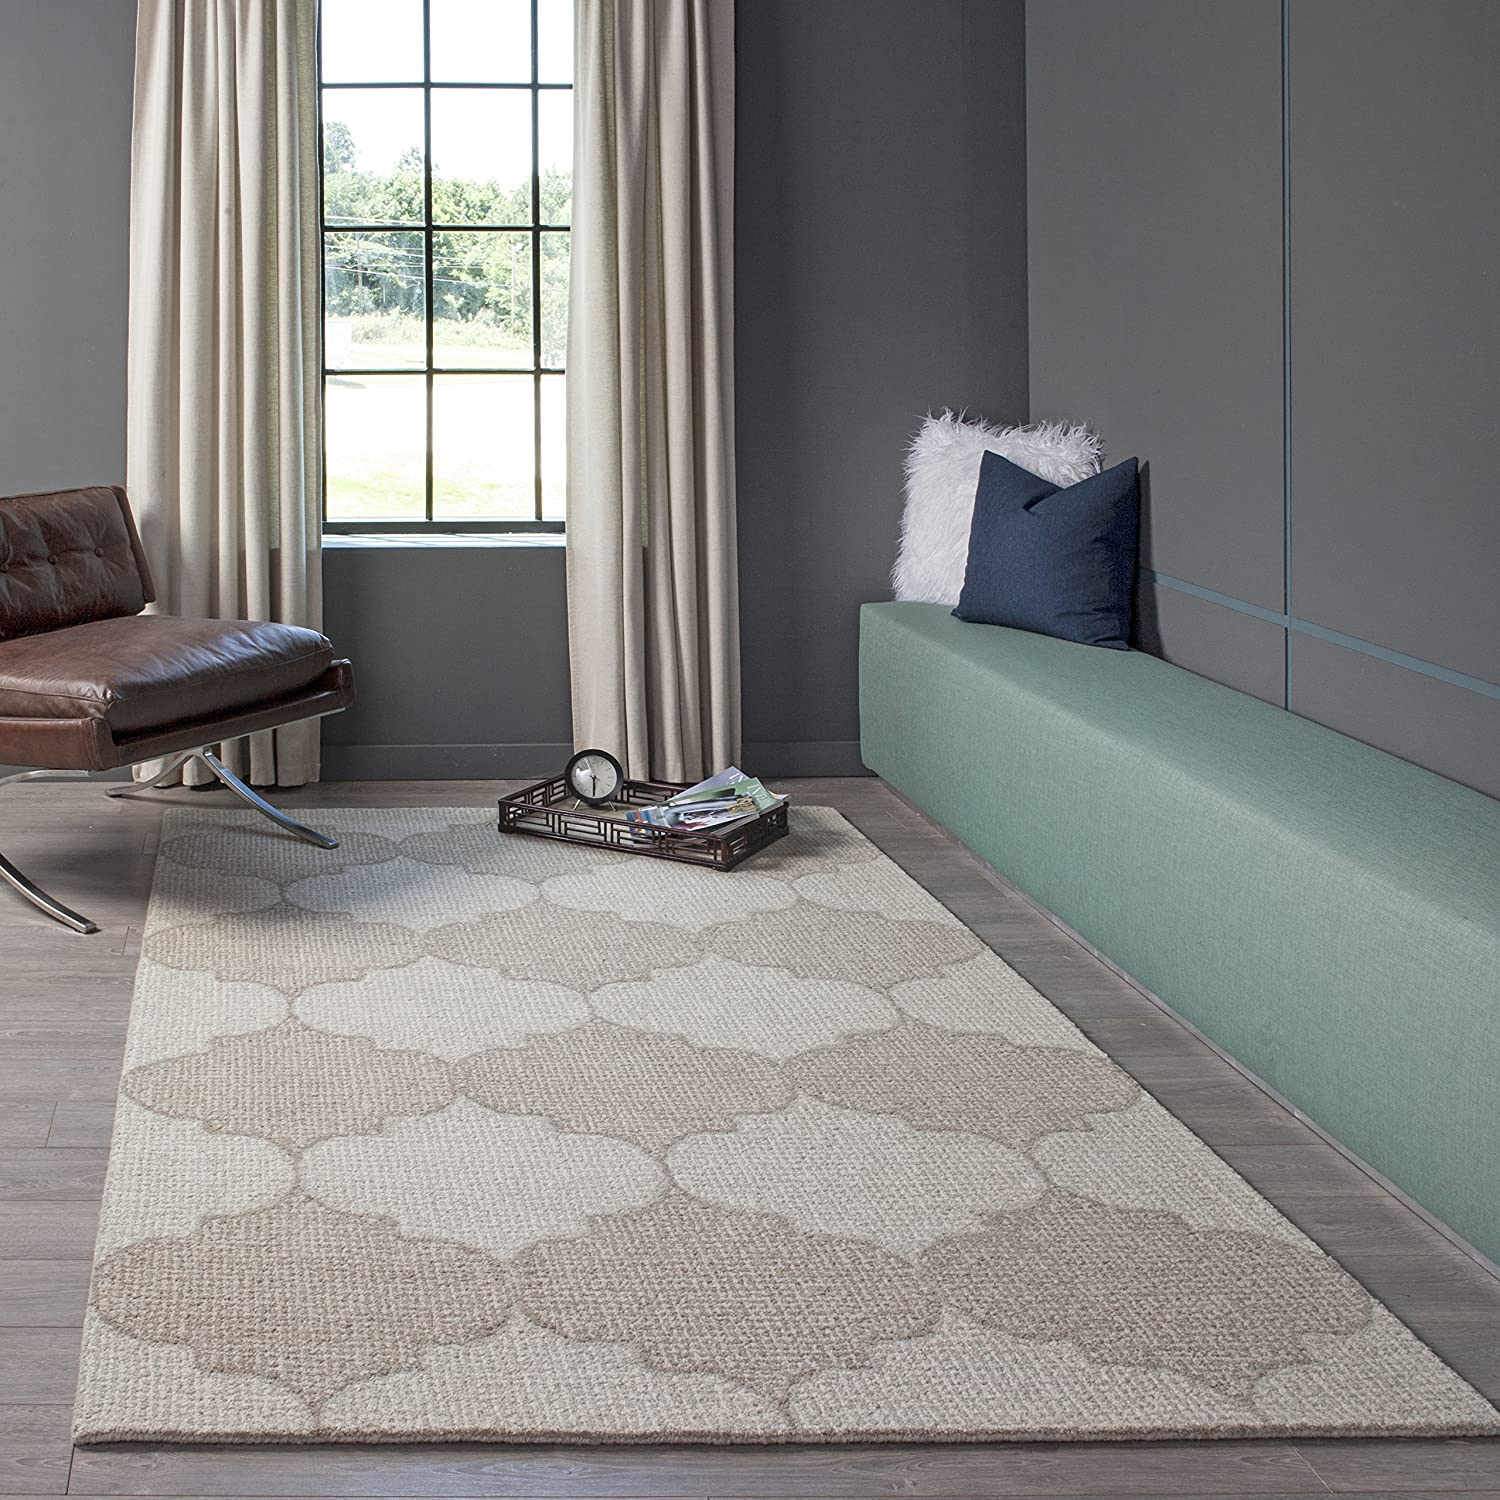 Momeni Rugs  Delhi Collection 100/% Wool Hand Carved /& Hand Tufted Contemporary Area Rug 23 x 80 Runner Beige